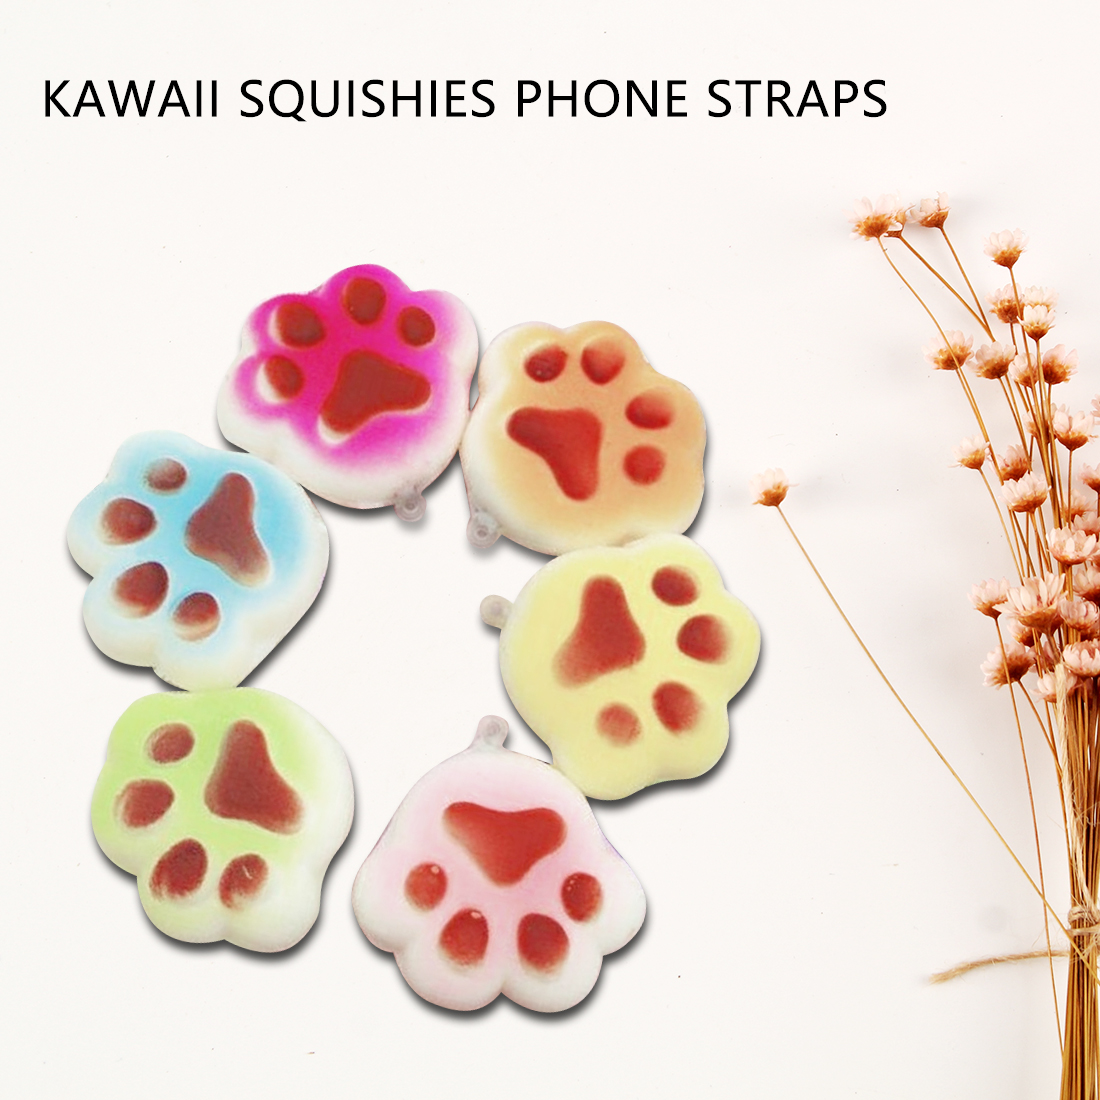 Mobile Phone Straps Punctual Etmakit Cute Squishy Cute Cat Claw Antistress Ball Squeeze Joke Rising Abreact Soft Sticky Squishy Stress Relief Phone Straps Consumers First